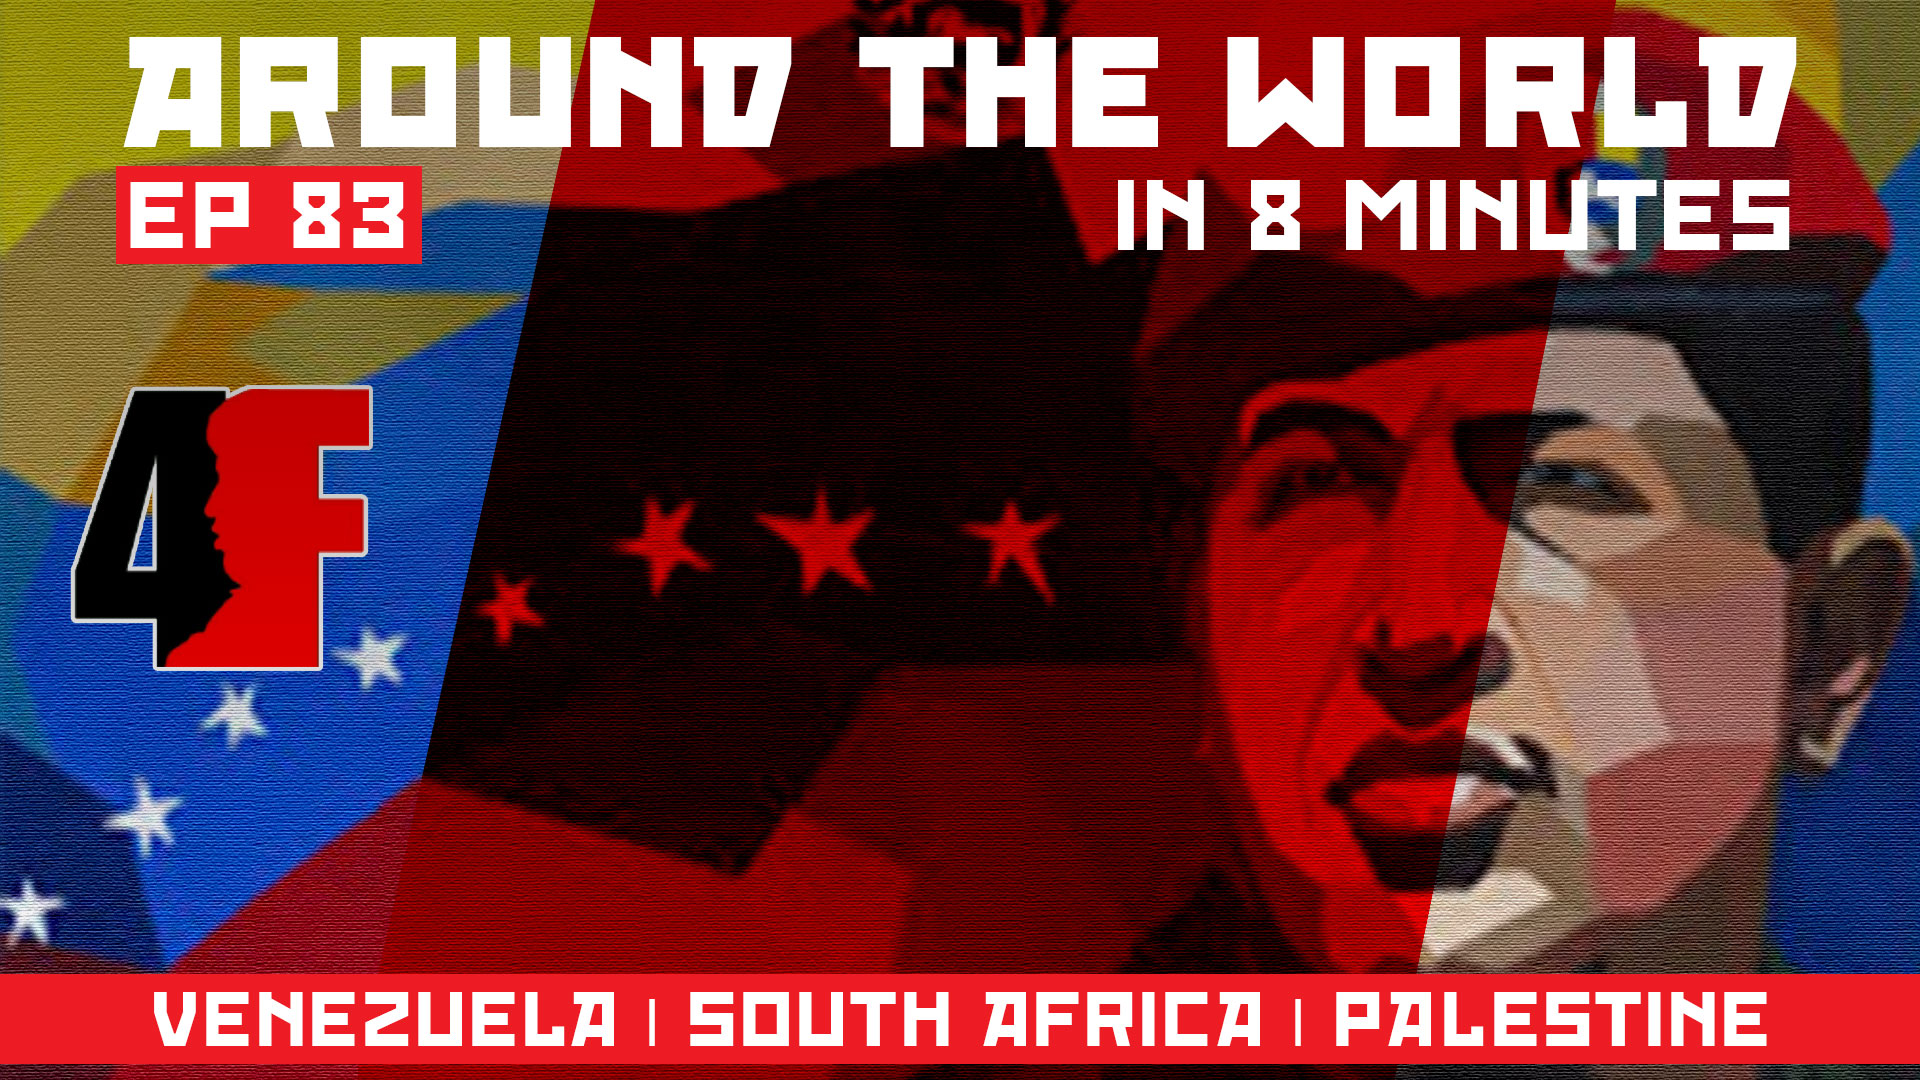 Around the world in 8 Mins_Venezuela South Africa Palestine_